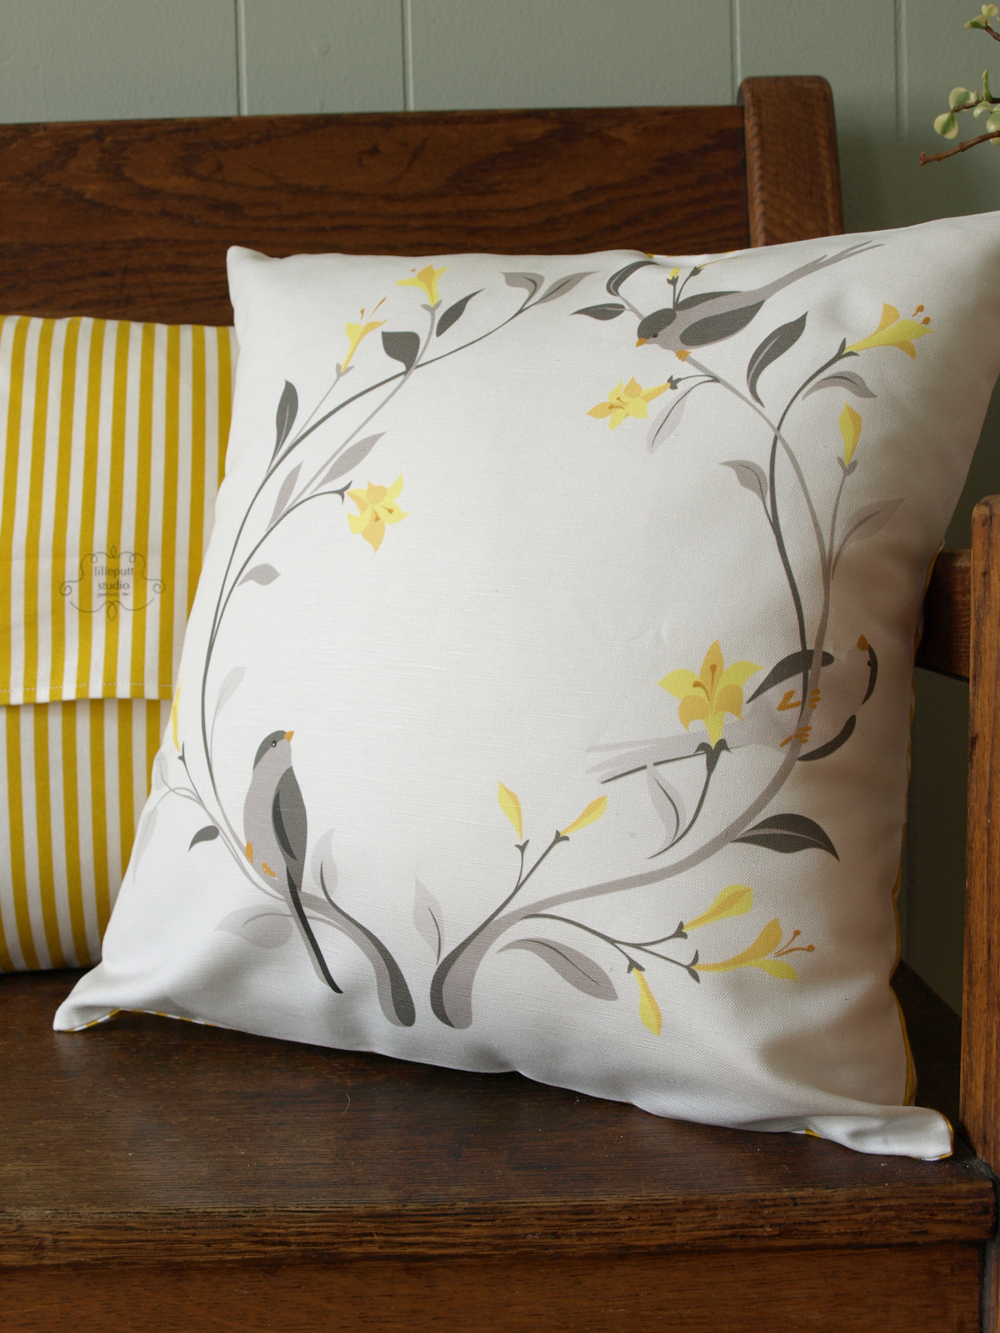 And our little grey bird pillow, at last!